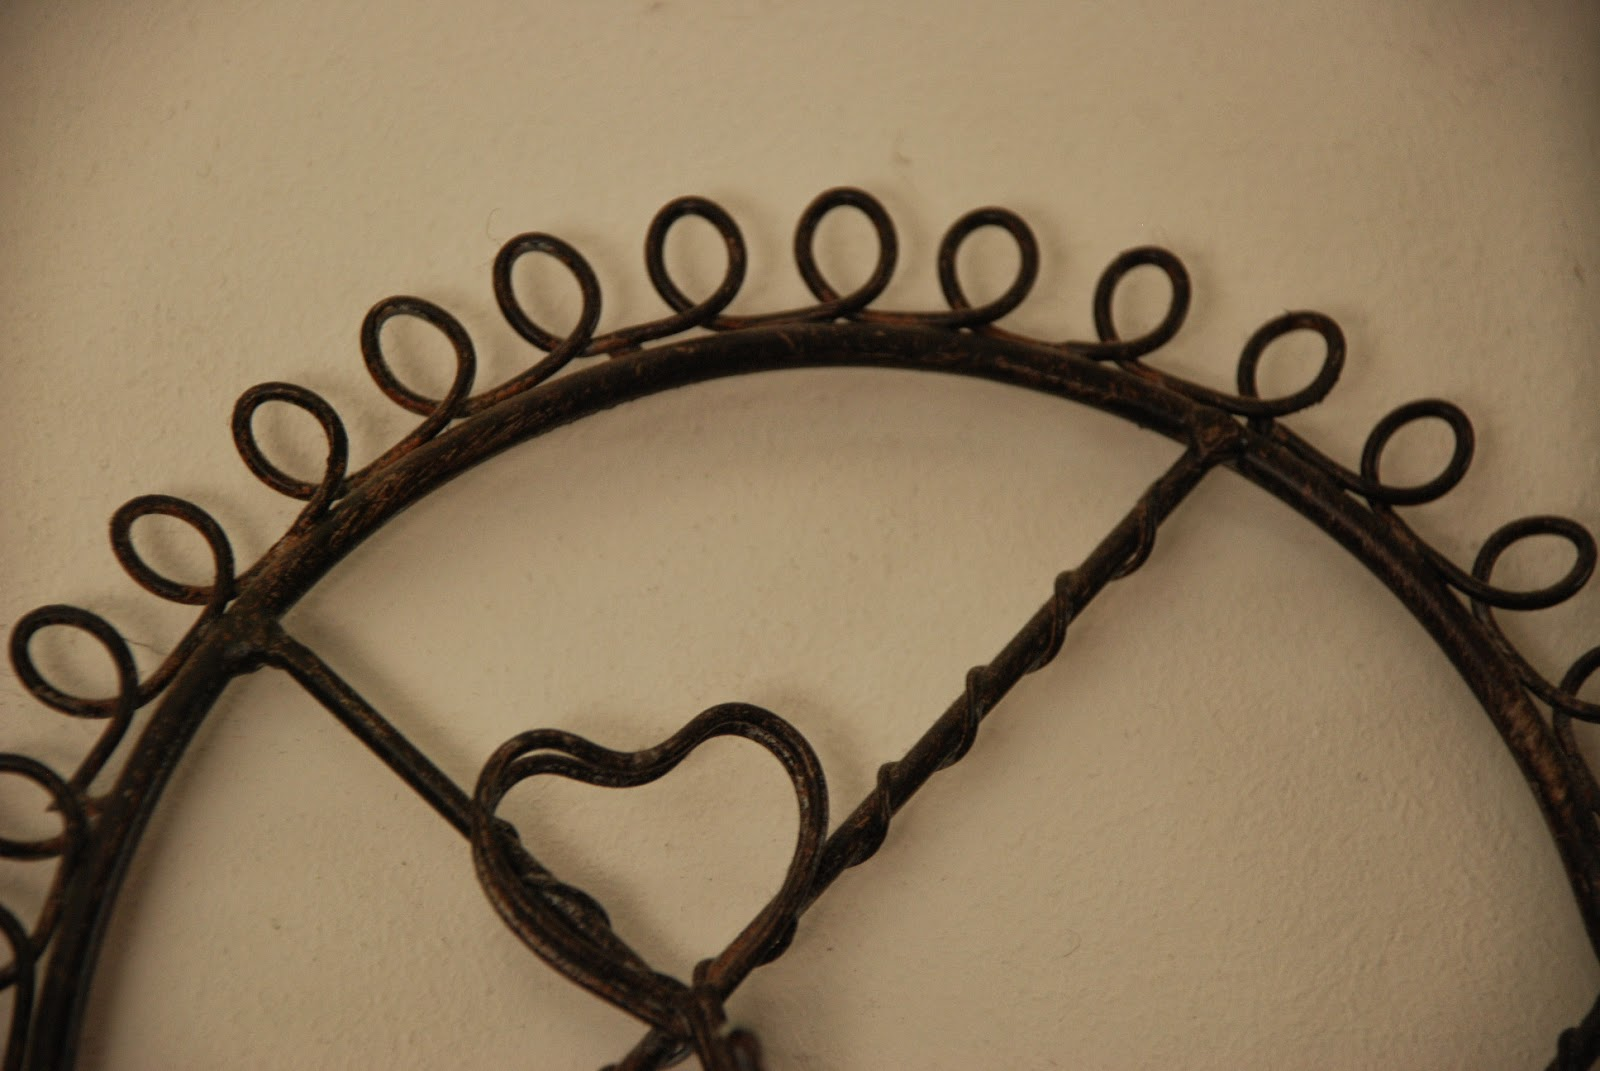 image of close up of metal heart memo holder